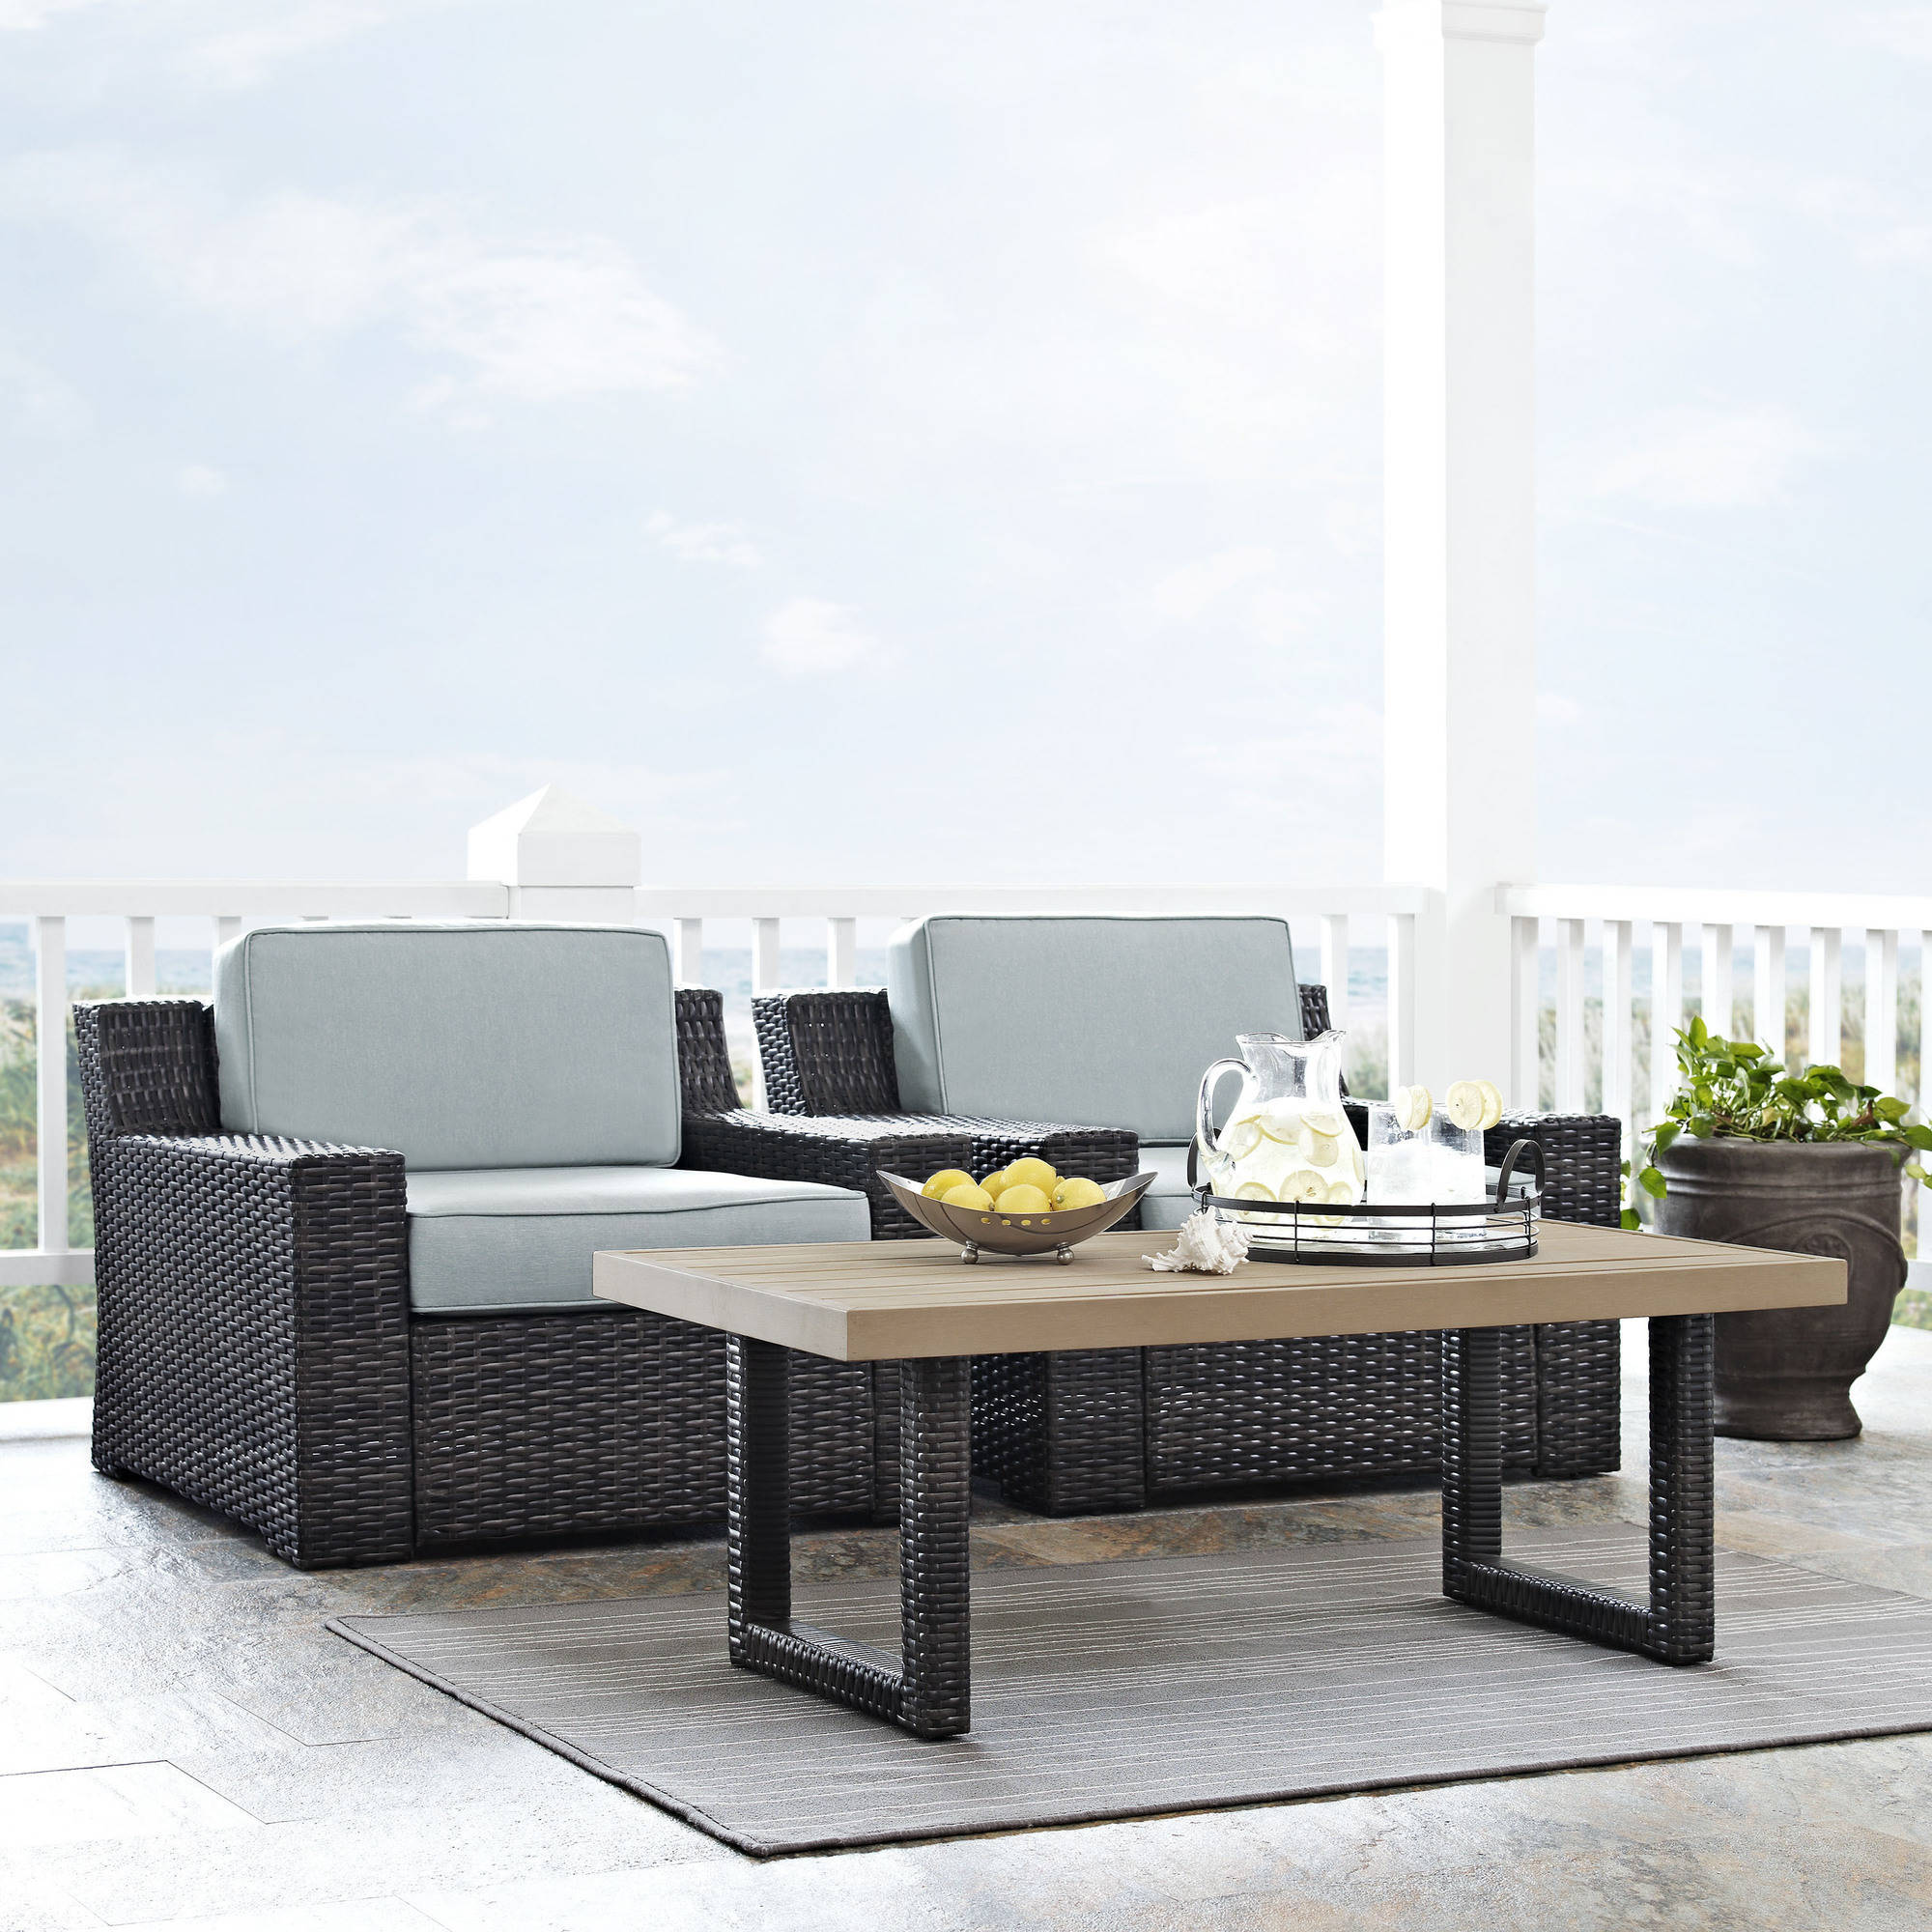 Beaufort 3-Piece Outdoor Wicker Seating Set with Mist Cushion, 2 Outdoor Wicker Chairs and Coffee Table